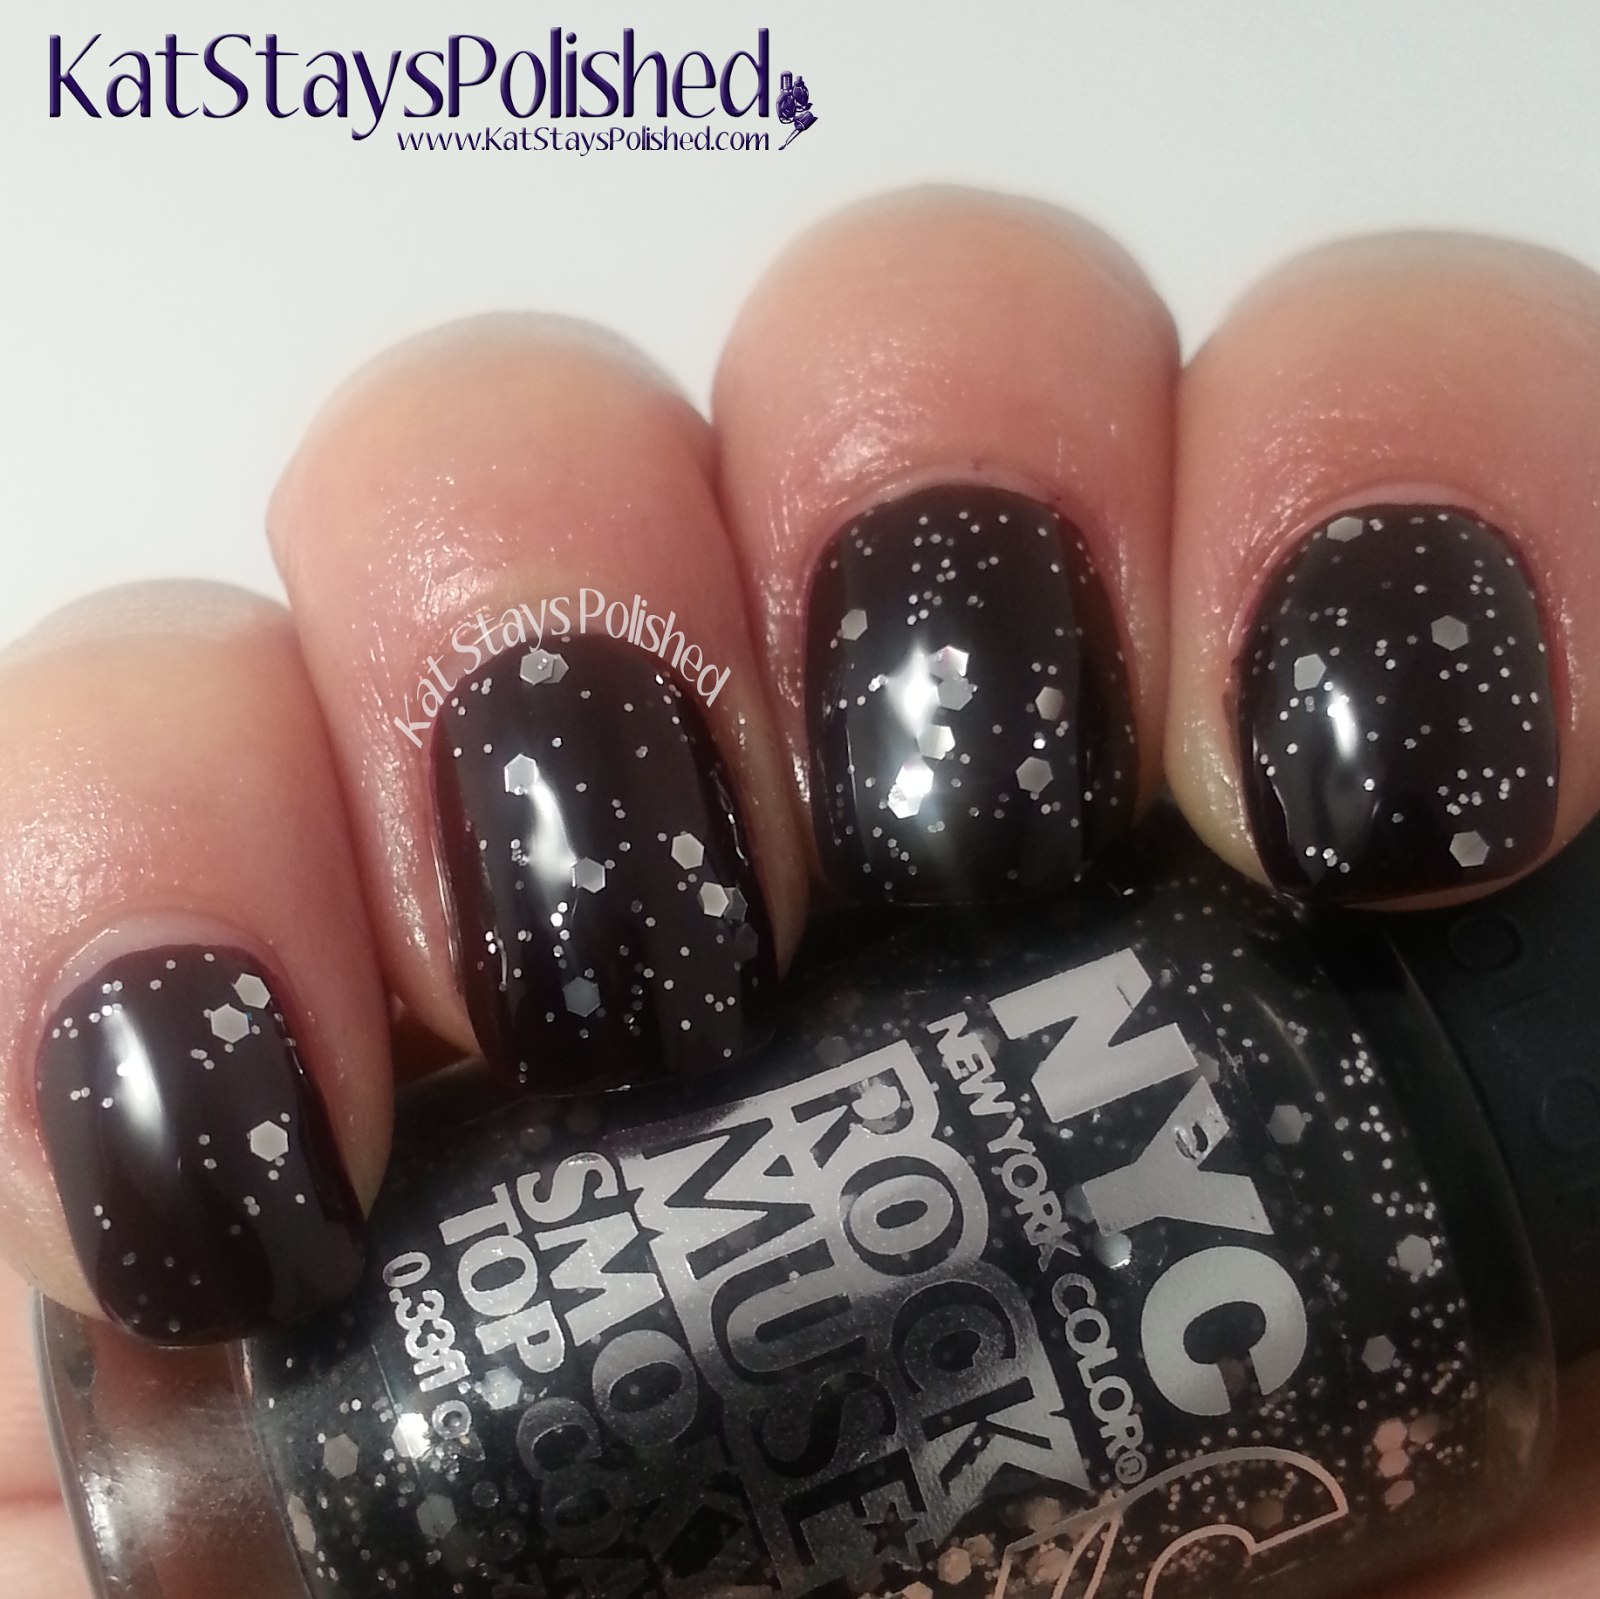 NYC New York Color - Midnight Beauty Collection - I Am Not AffRED with Rock Muse | Kat Stays Polished